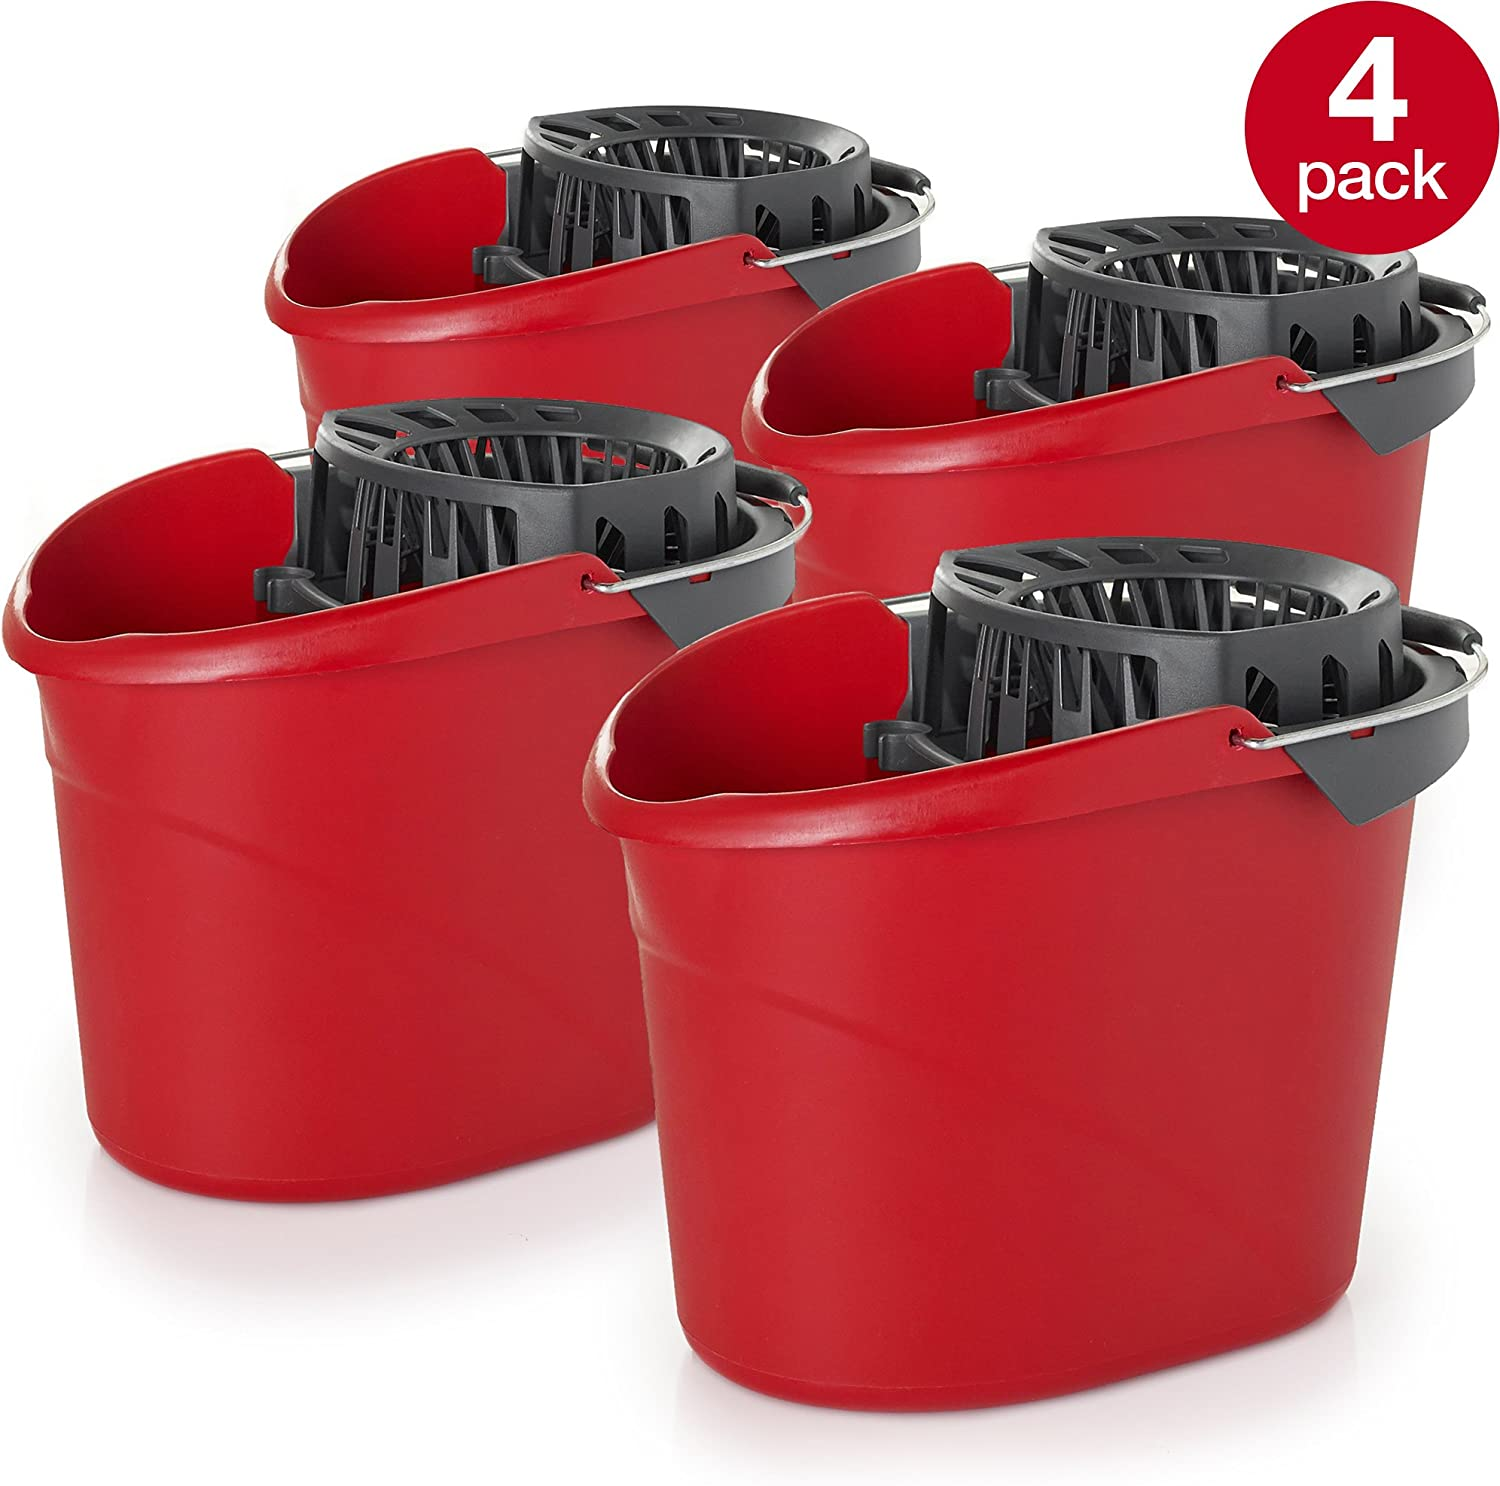 Pack of 4 O-Cedar Quick Wring Bucket 2.5 Gallon Bucket With Wringer